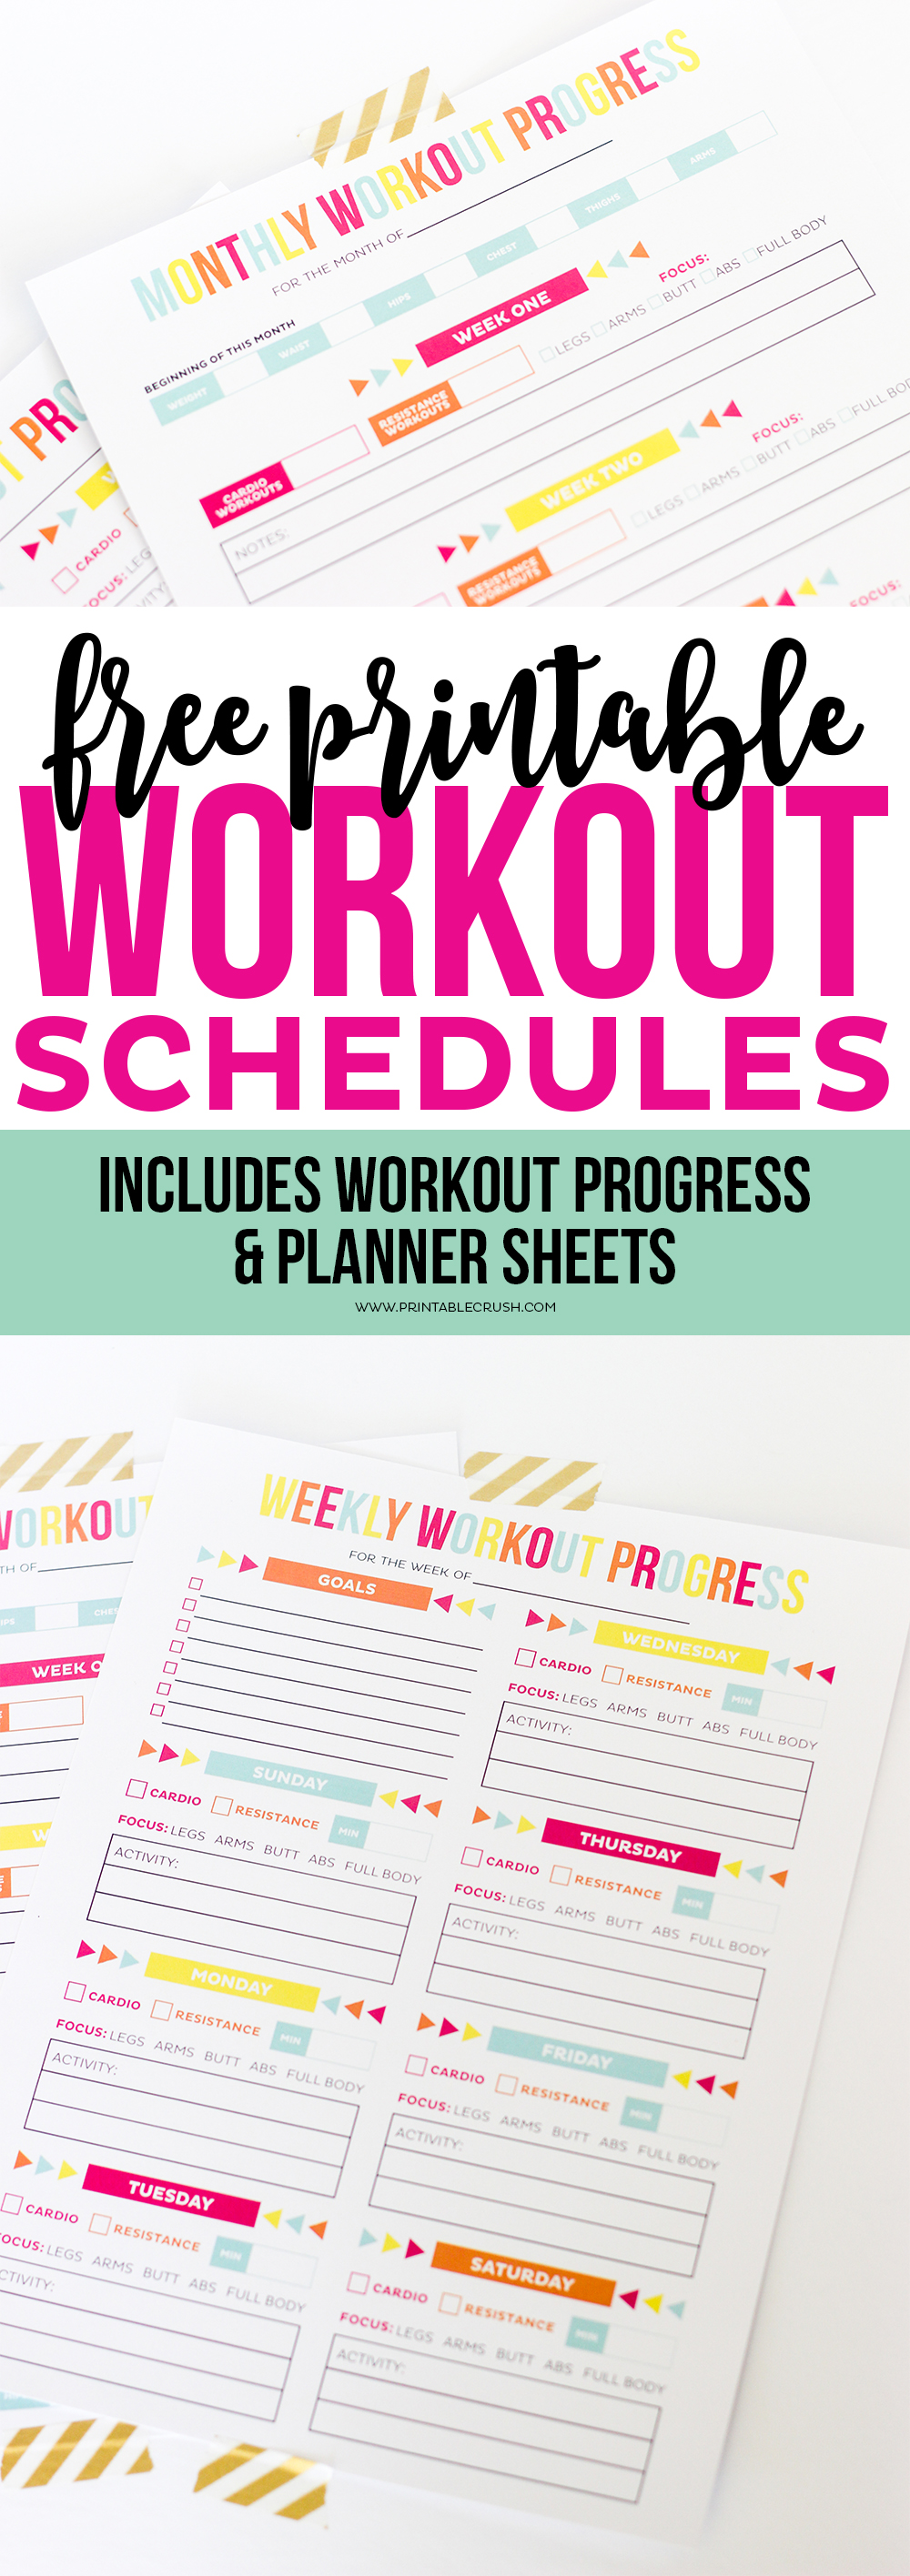 It is a picture of Printable Workout Routines inside home